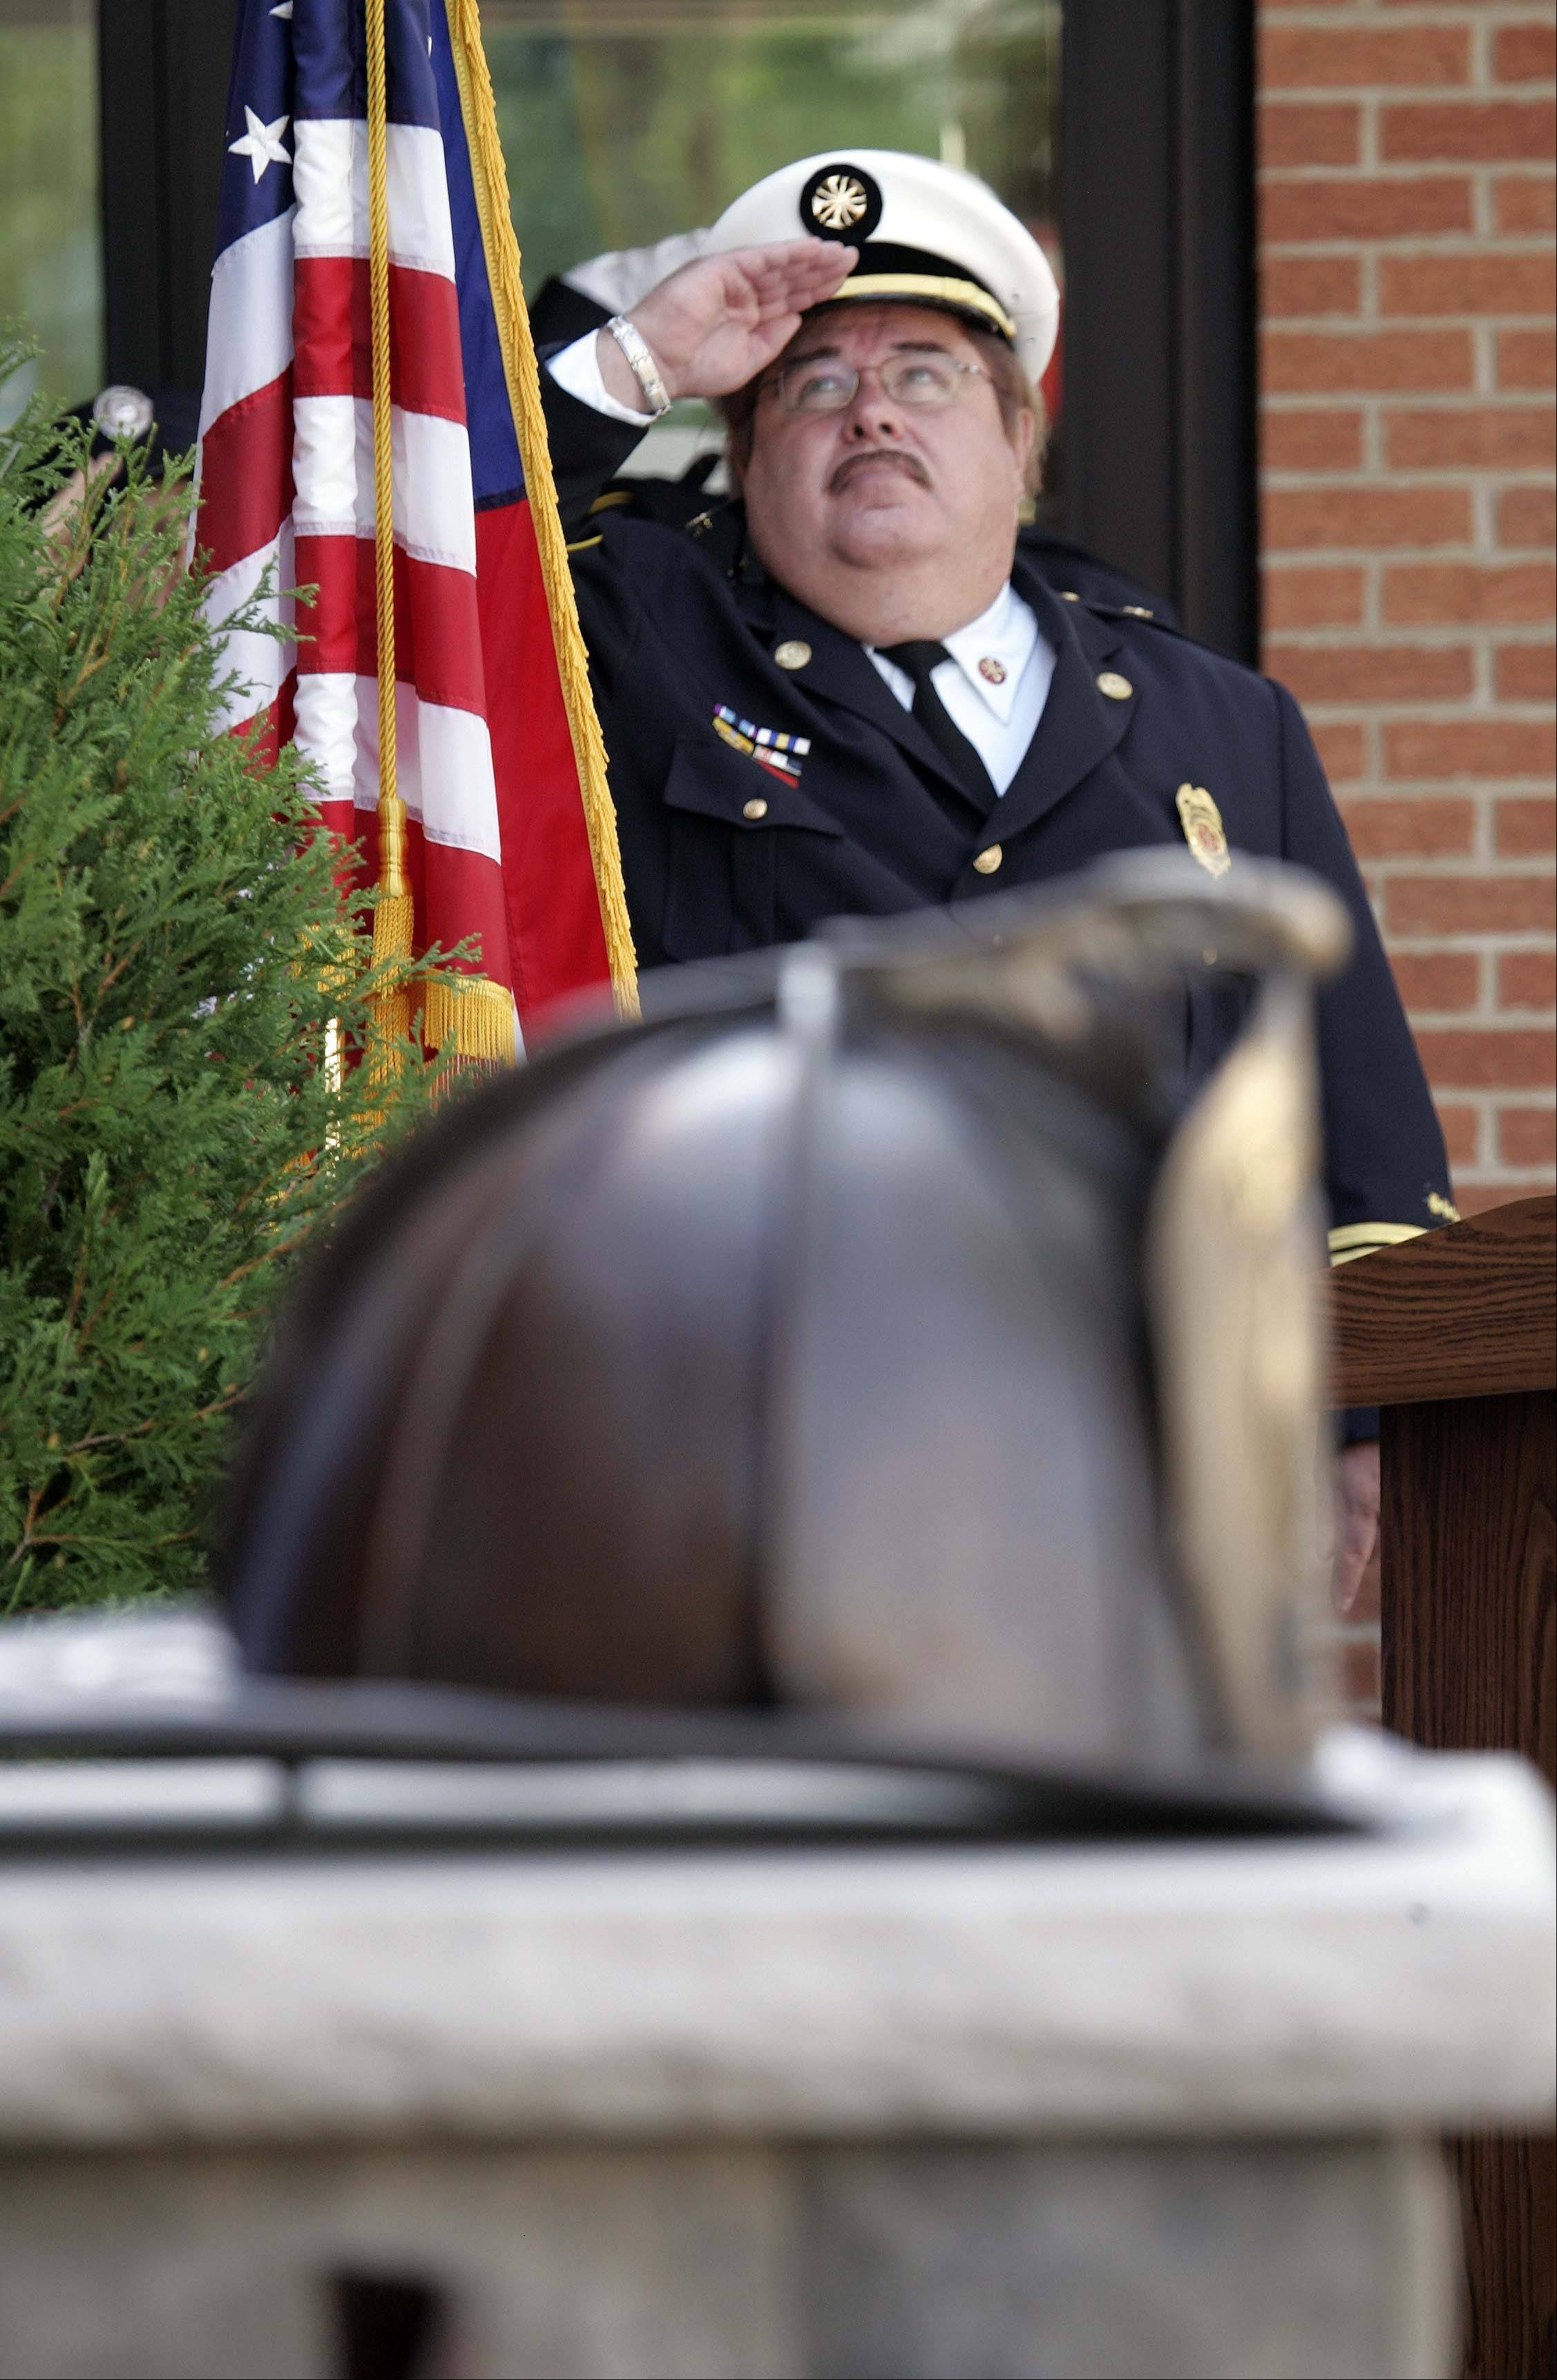 Carpentersville fire chief put on administrative leave